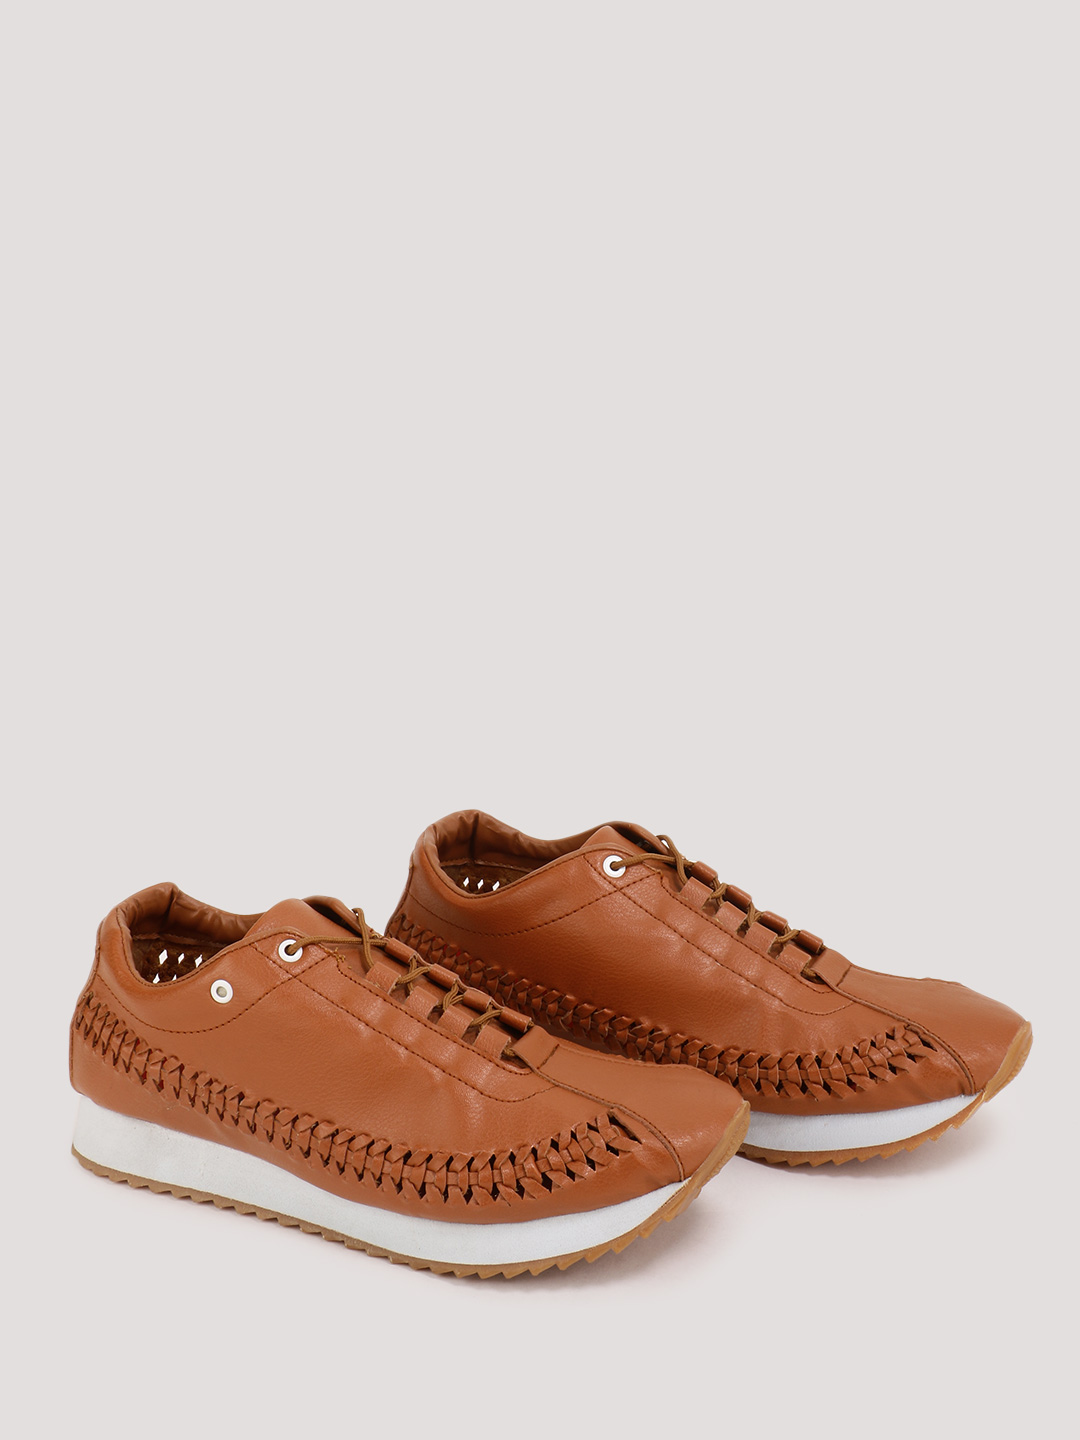 Marcello & Ferri Tan Sneakers With Woven Upper Detailing 1